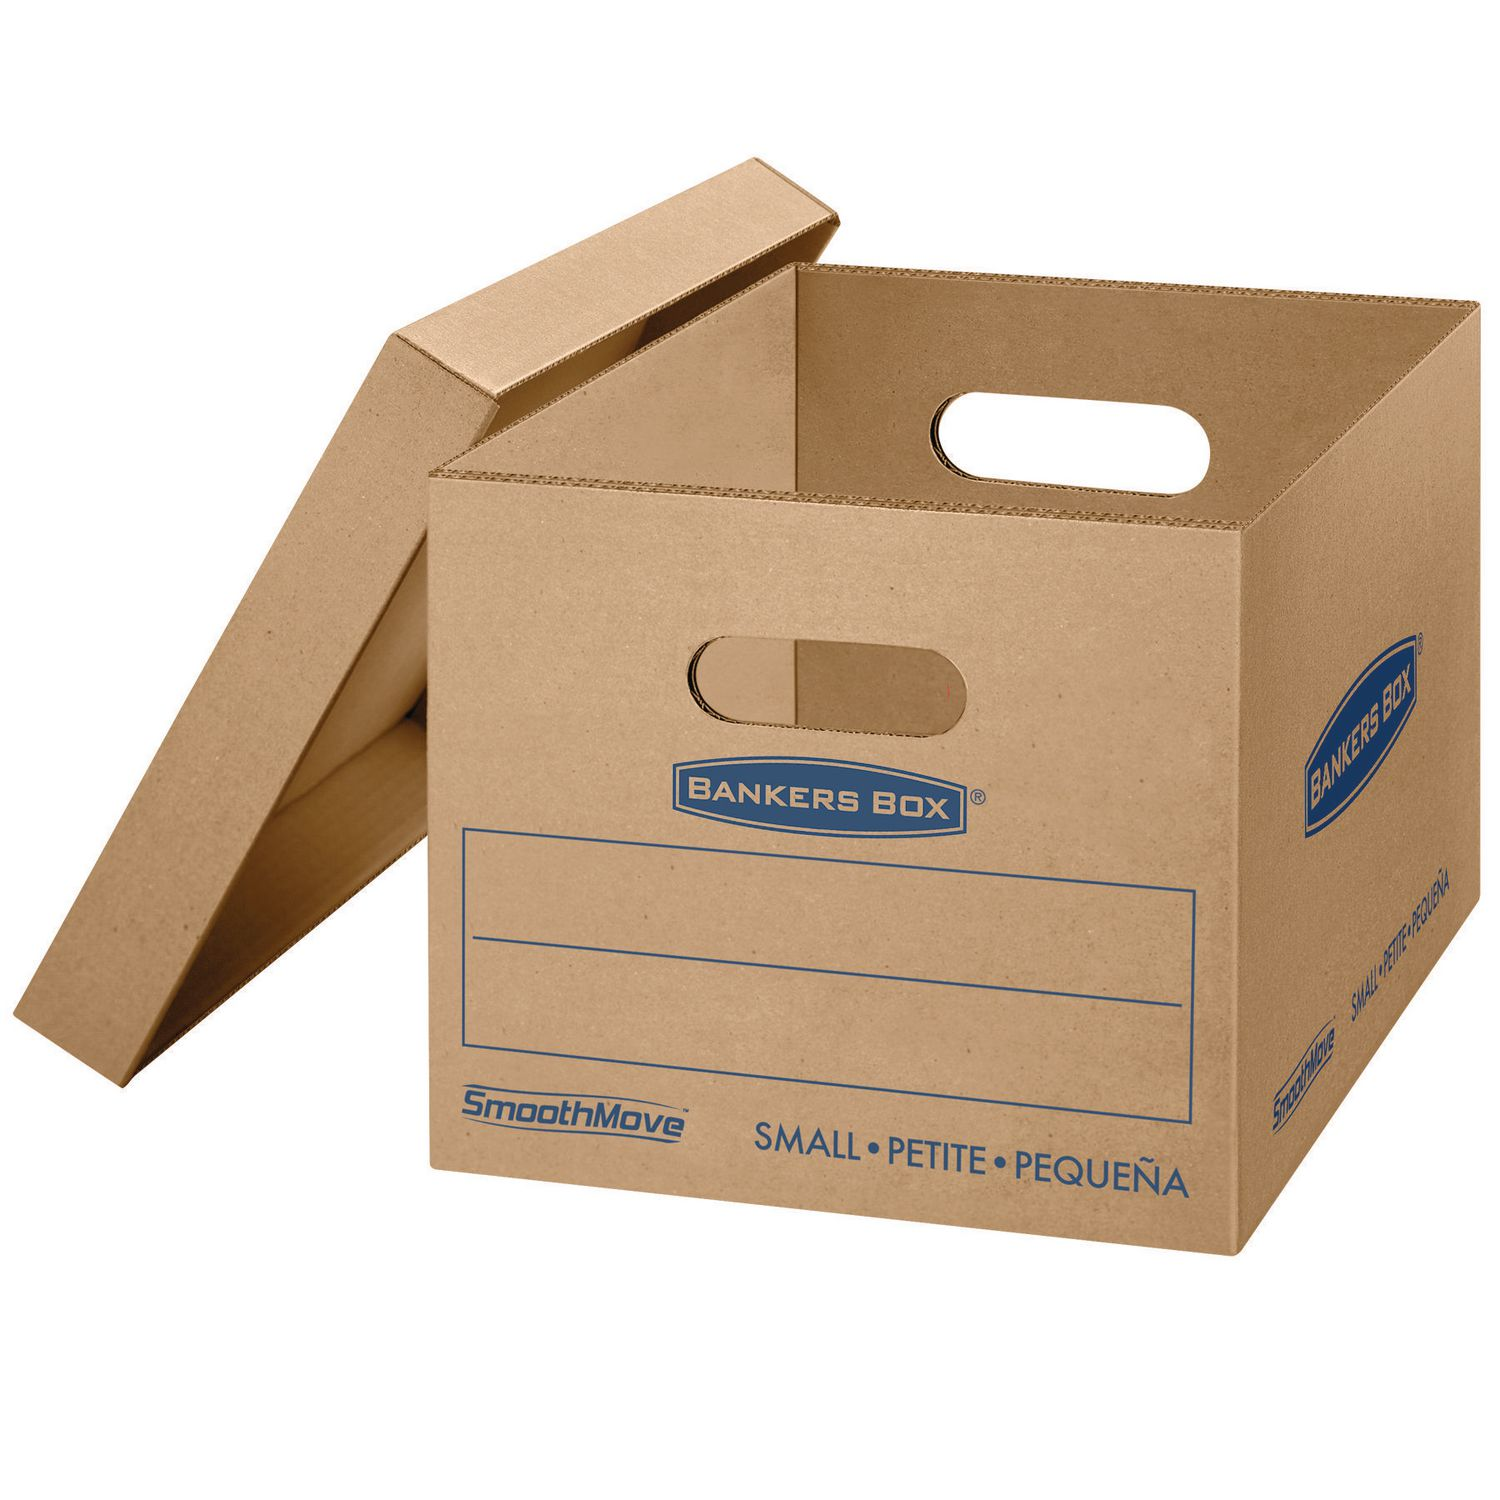 walmart cardboard boxes toy boxes storage boxes blue grey color